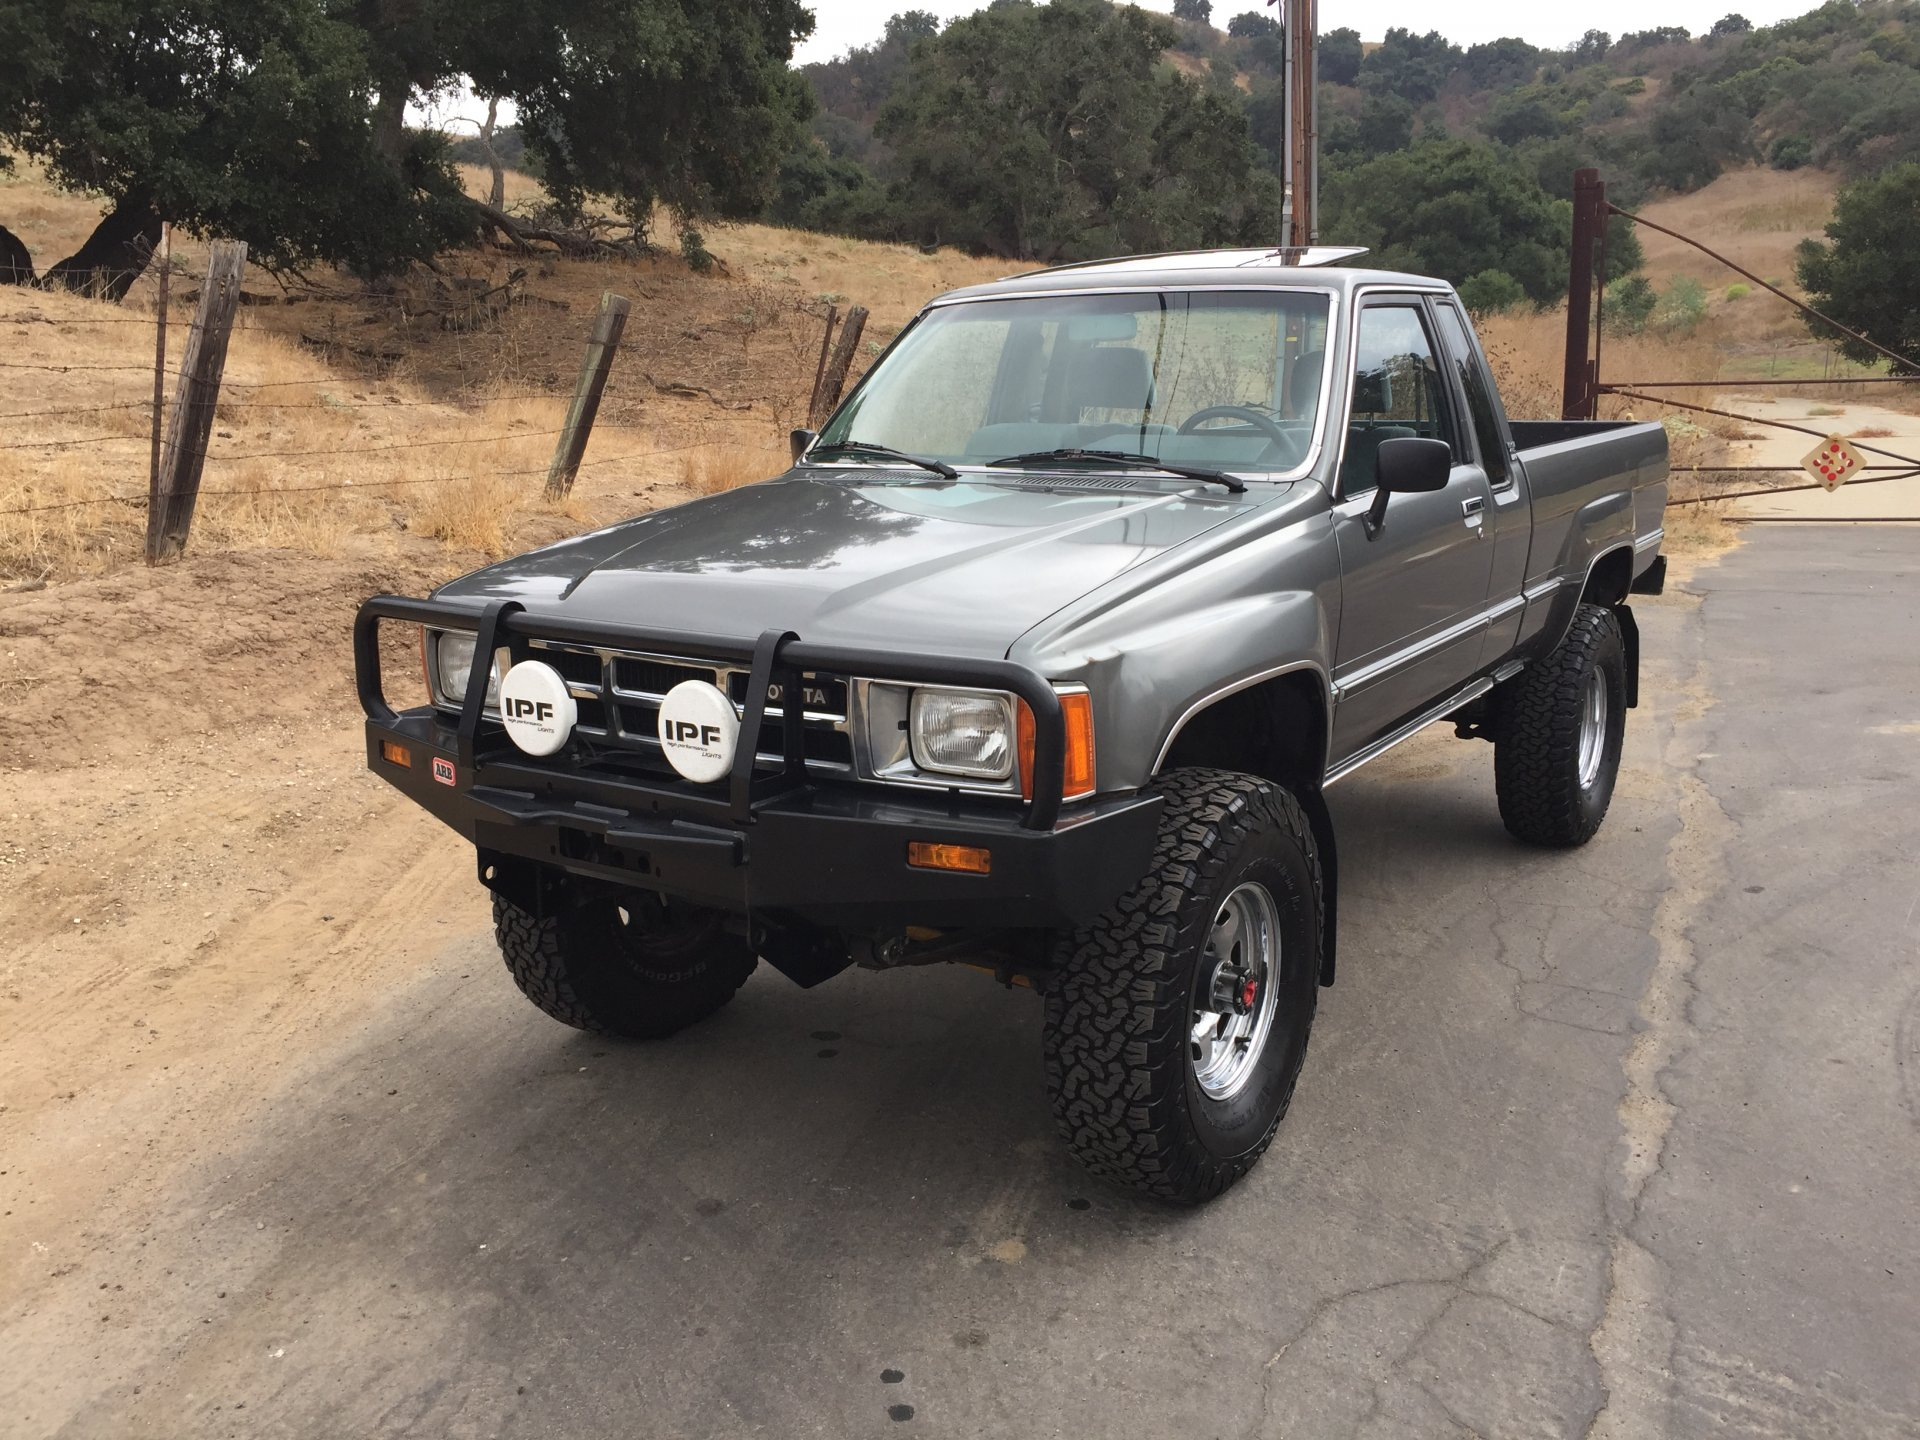 For Sale - 1985 Toyota 4x4 Pickup Truck Solid Axle EFI 22RE